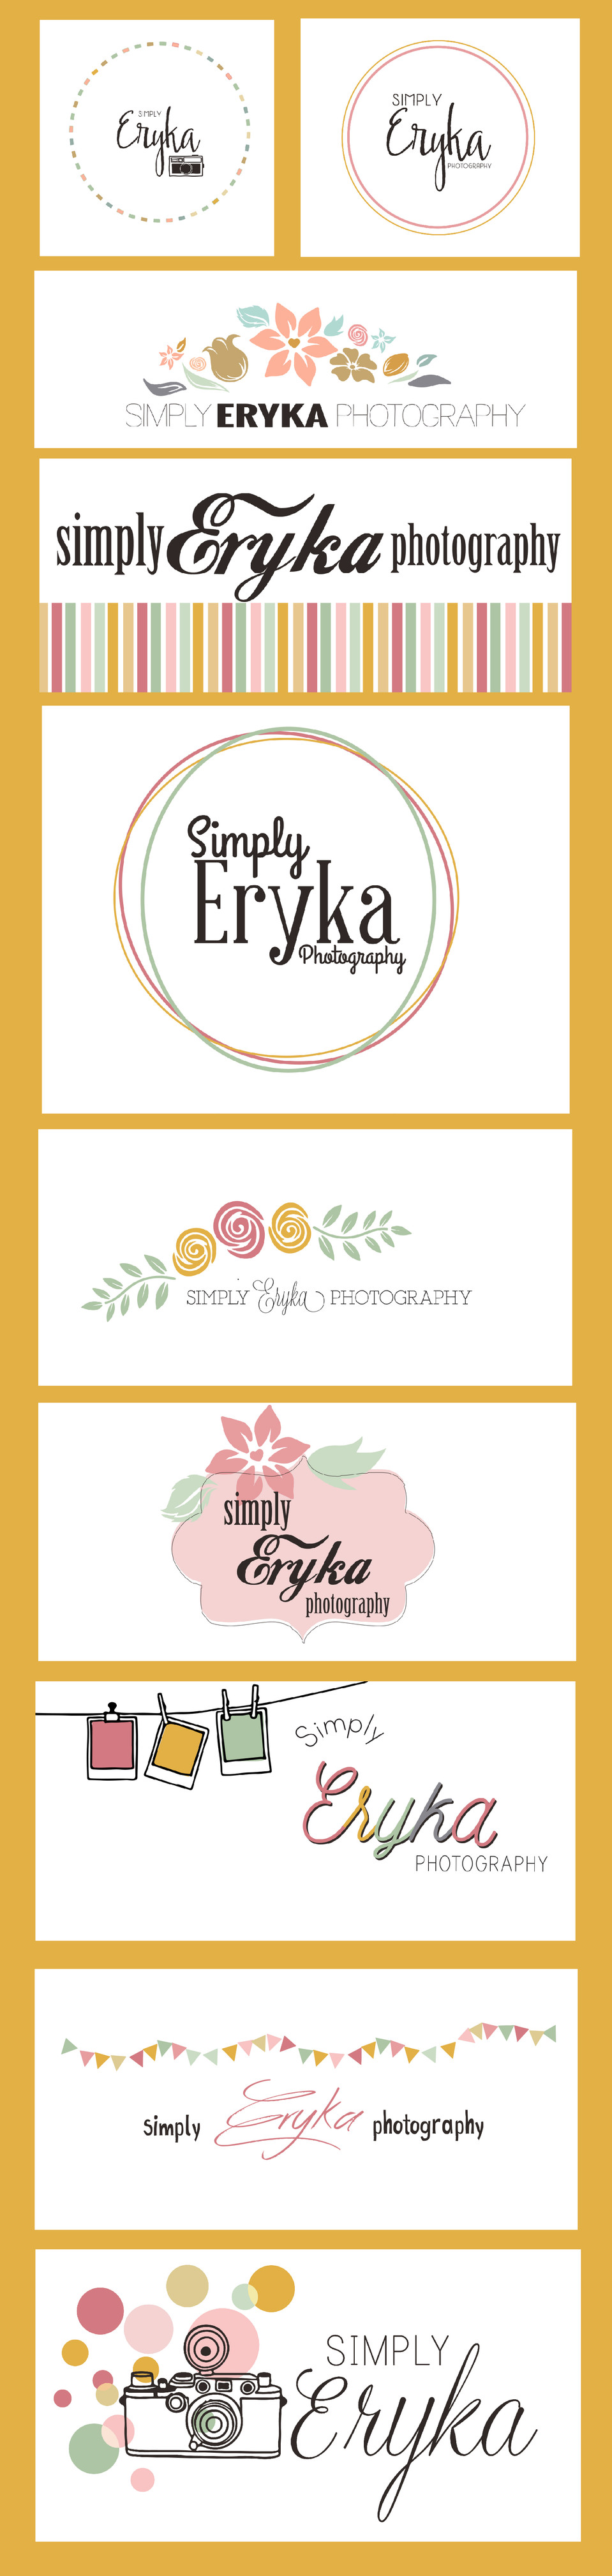 Simply Eryka Photography Logo Samples